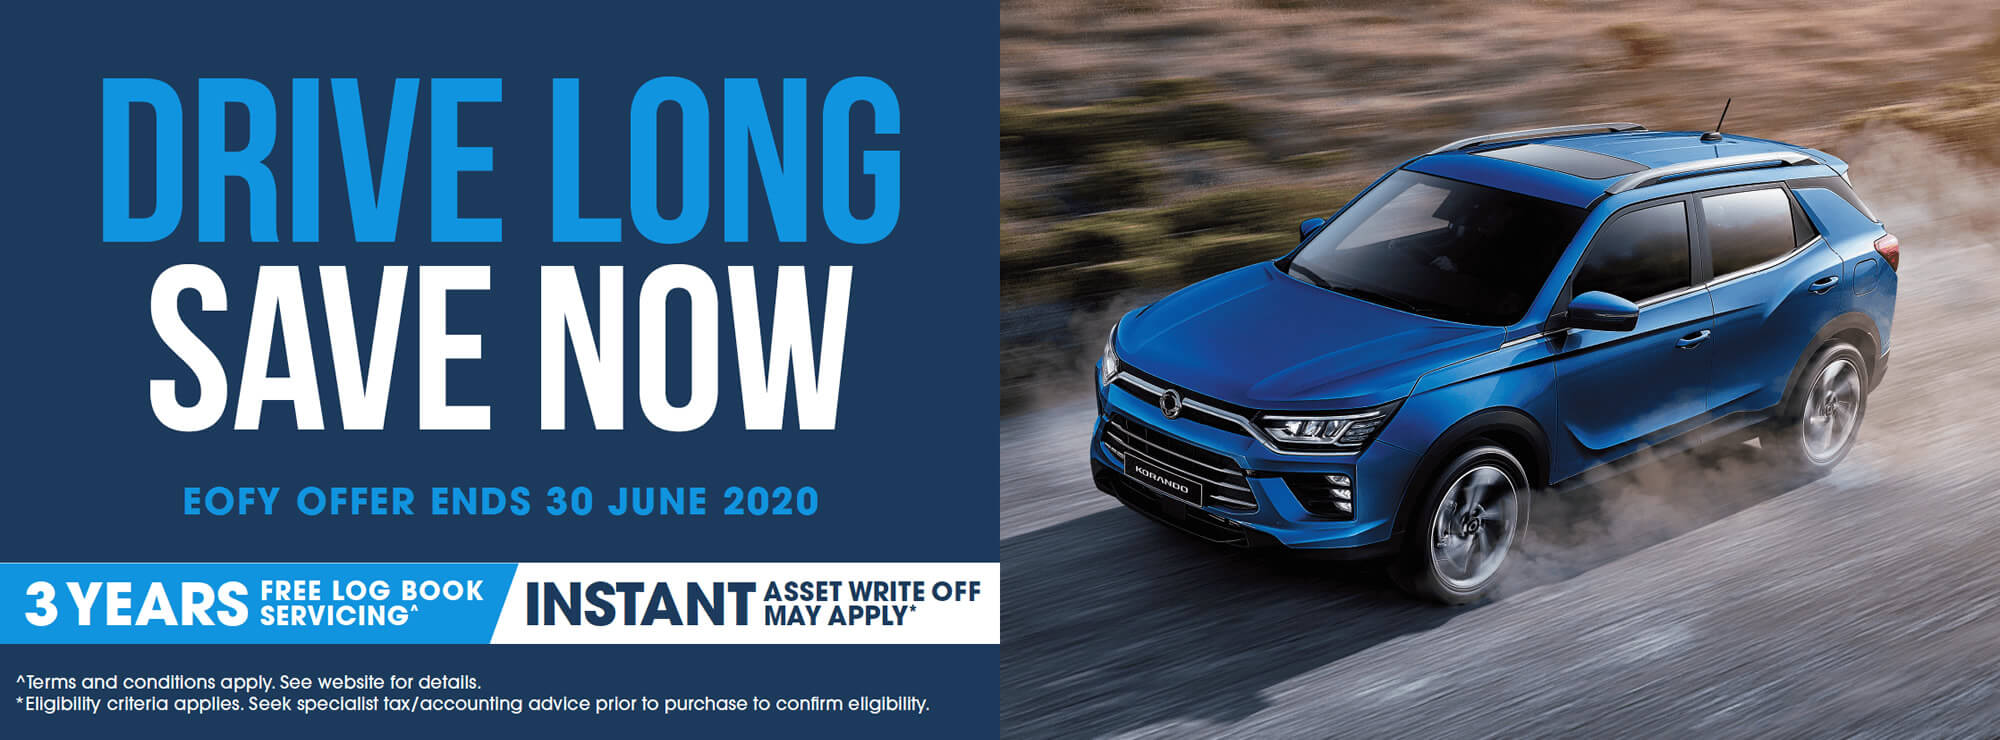 SsangYong Drive Long Save Now EOFY Offer